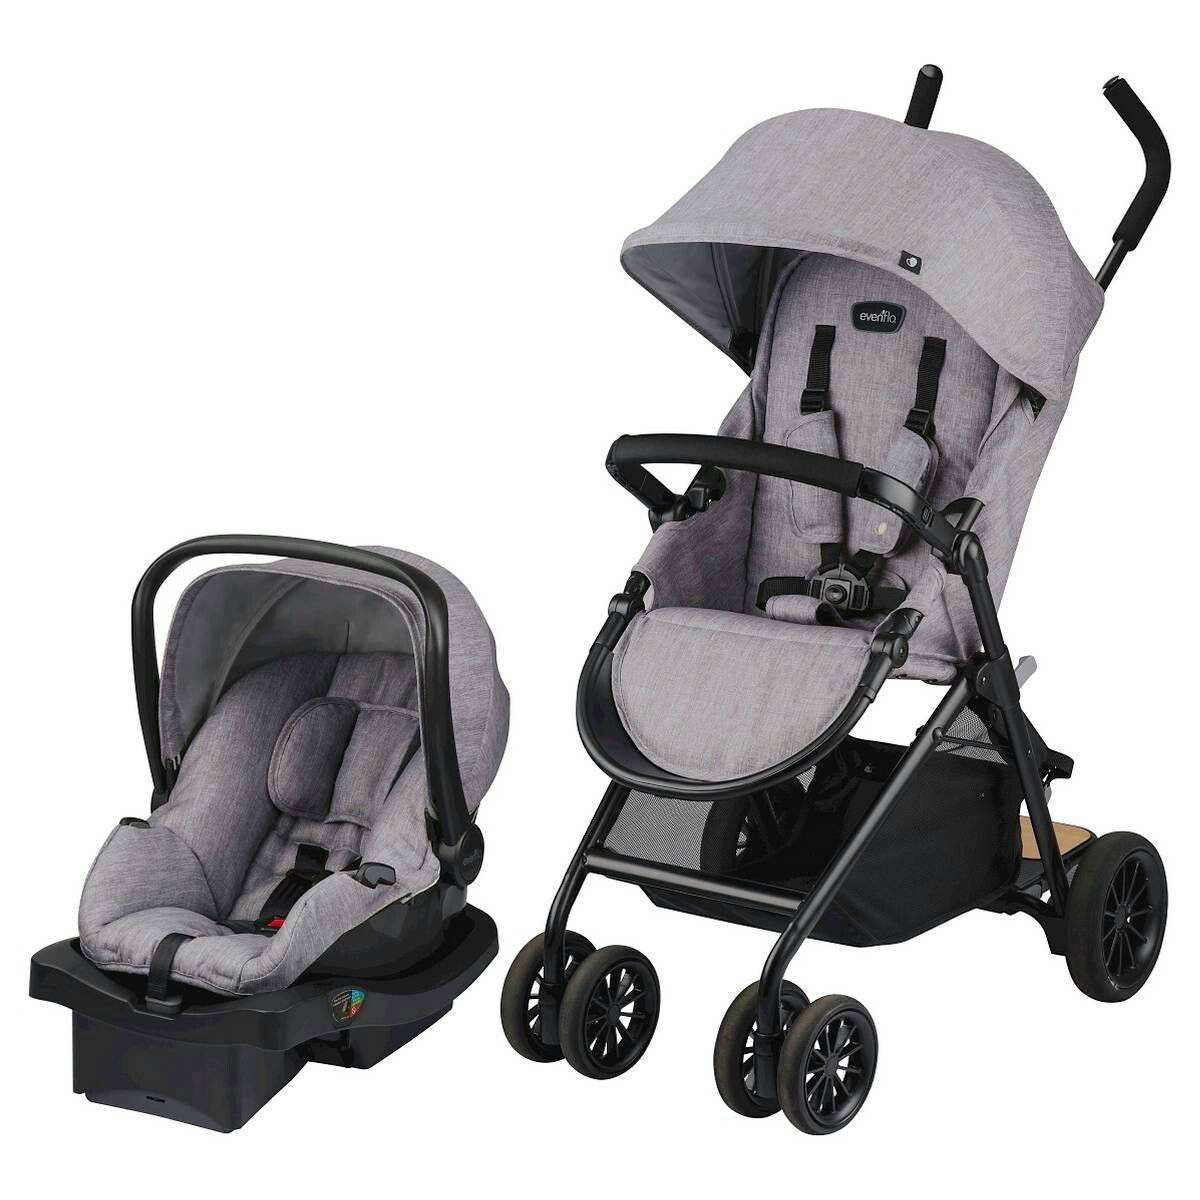 189.99 Evenflo® Sibby Travel System (With images